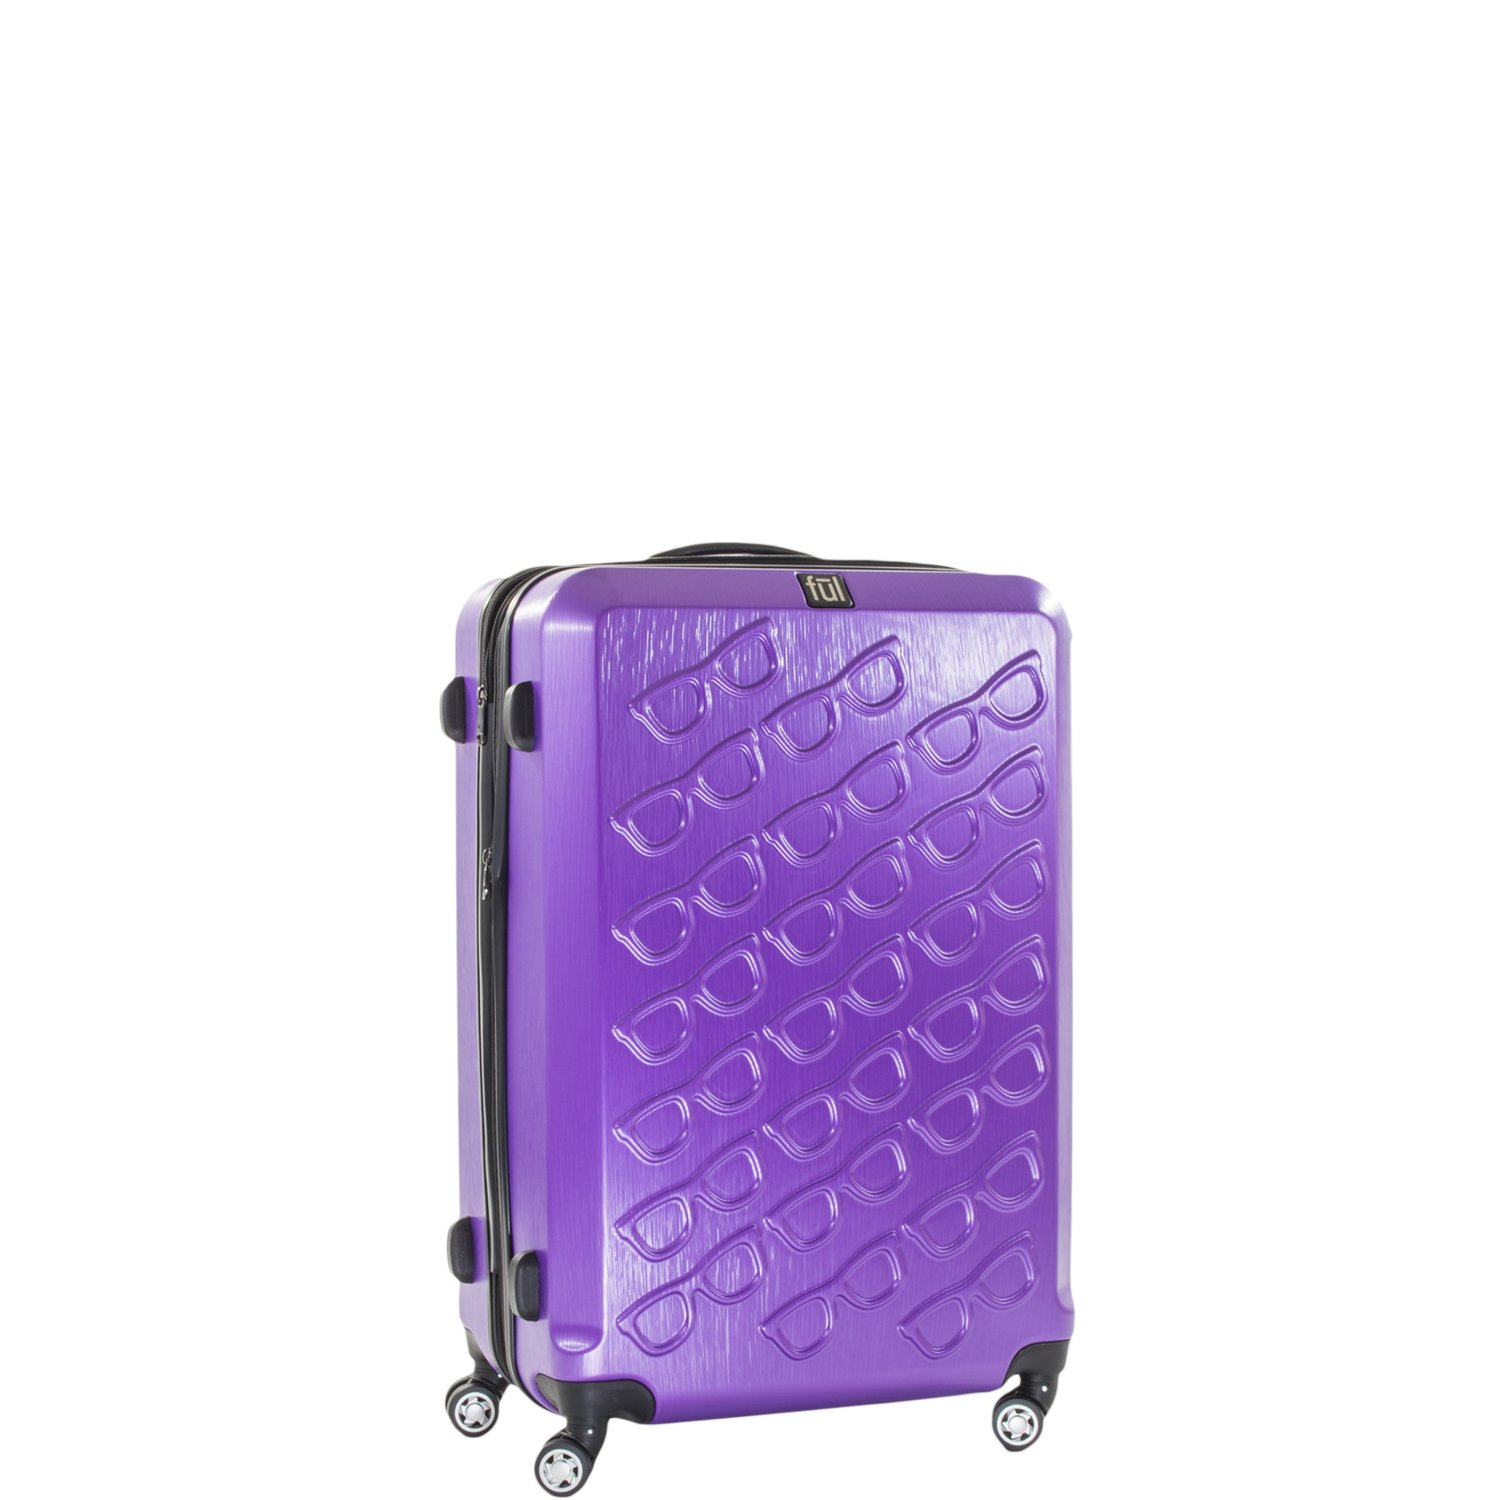 Ful Sunglasses 21in Spinner Rolling Luggage Suitcase Carry-On Luggage, Purple